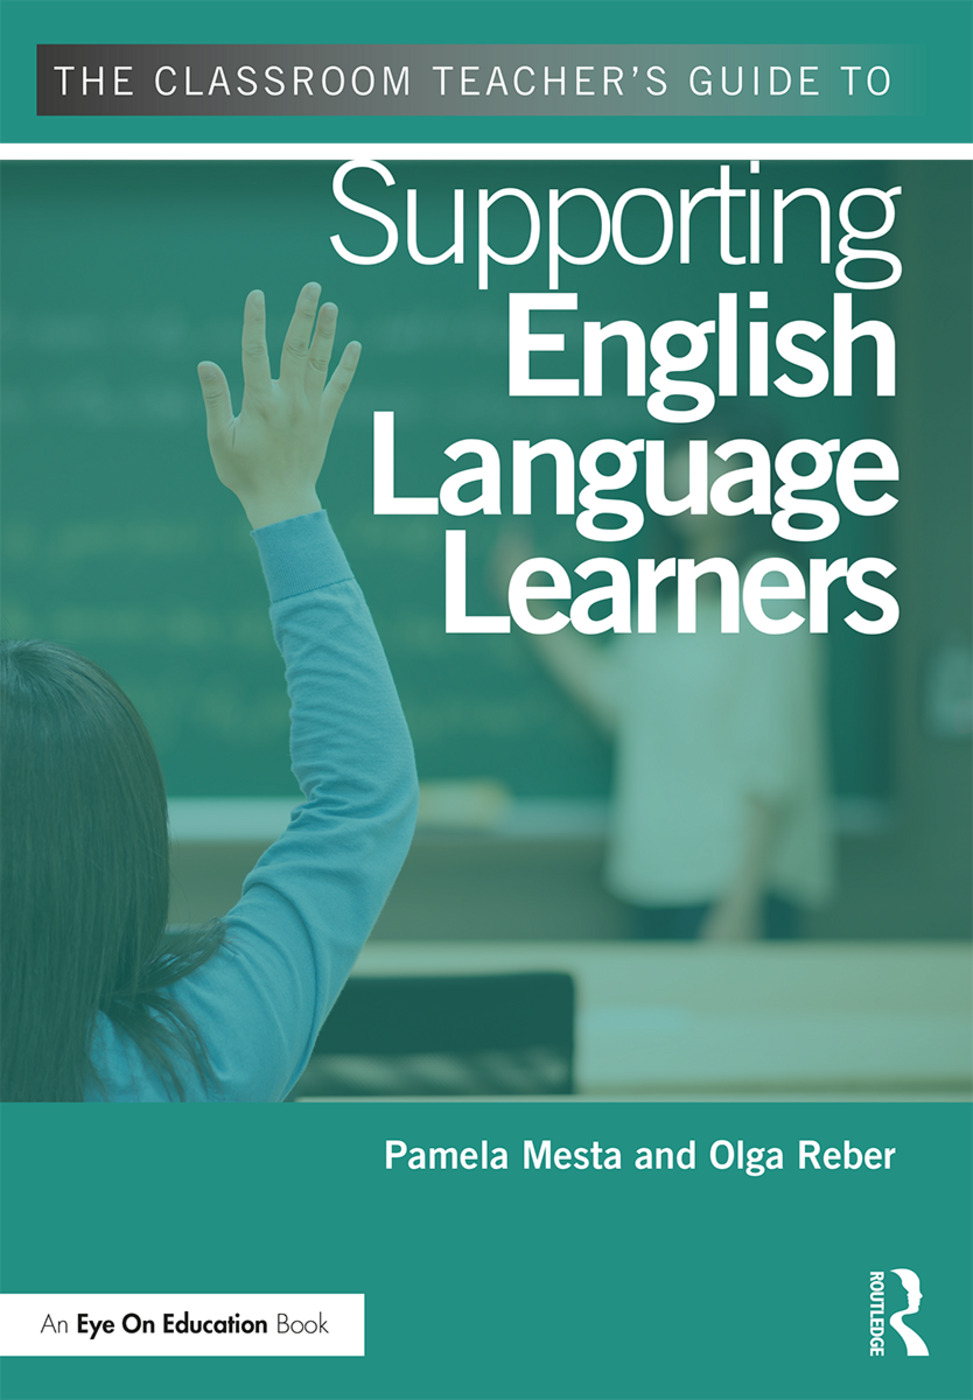 How Does Linguistics Impact Teaching and Learning?